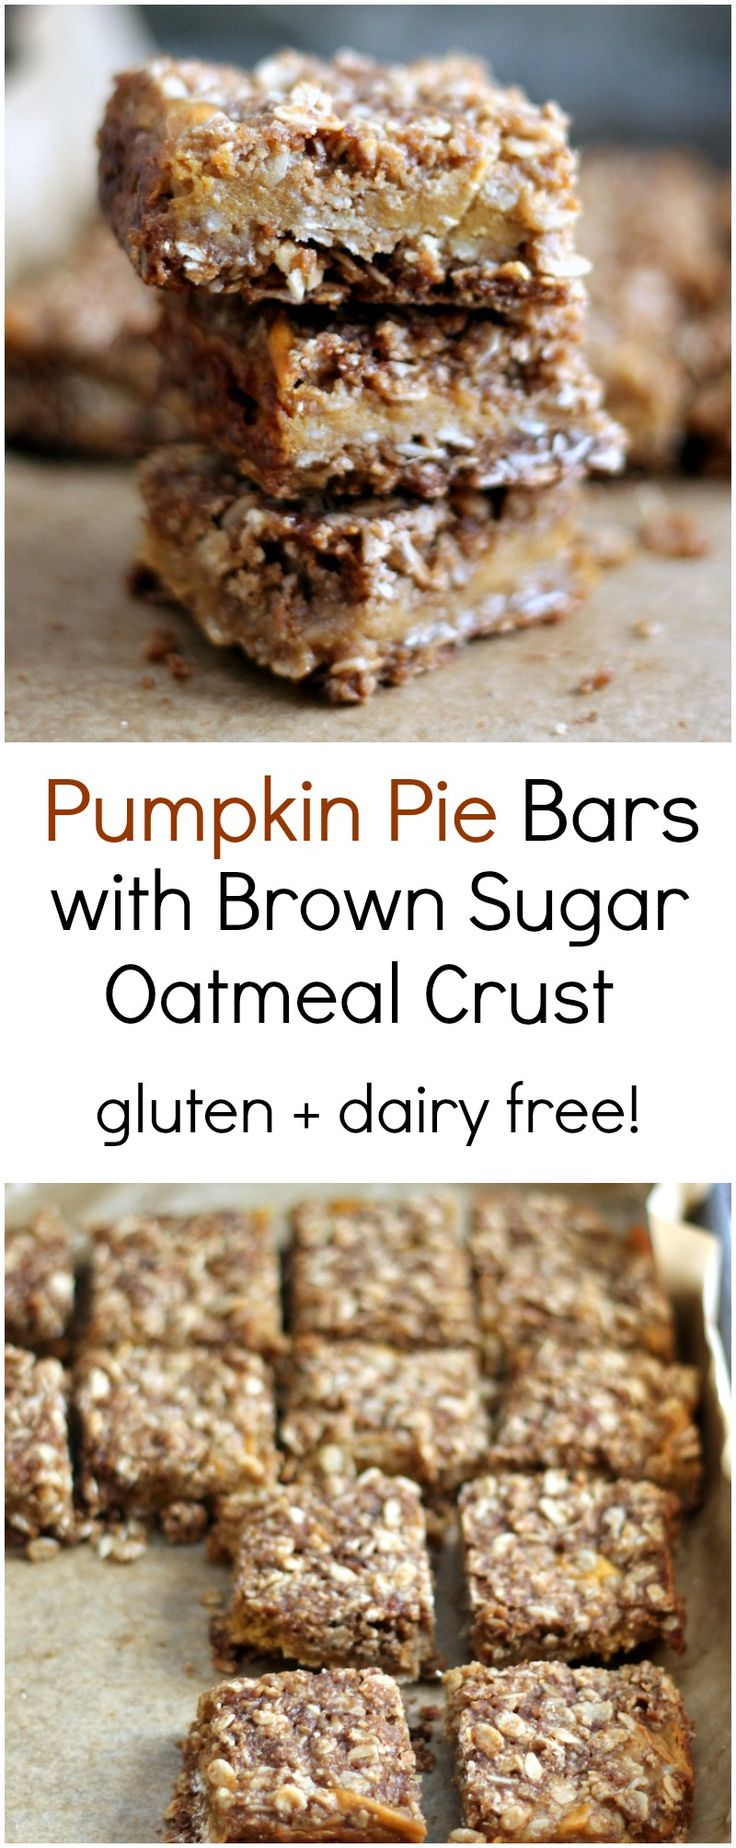 Delicious gluten free bars with a brown sugar oatmeal crust and a luscious pumpkin pie cream cheese filling - mostly good for you ingredients!